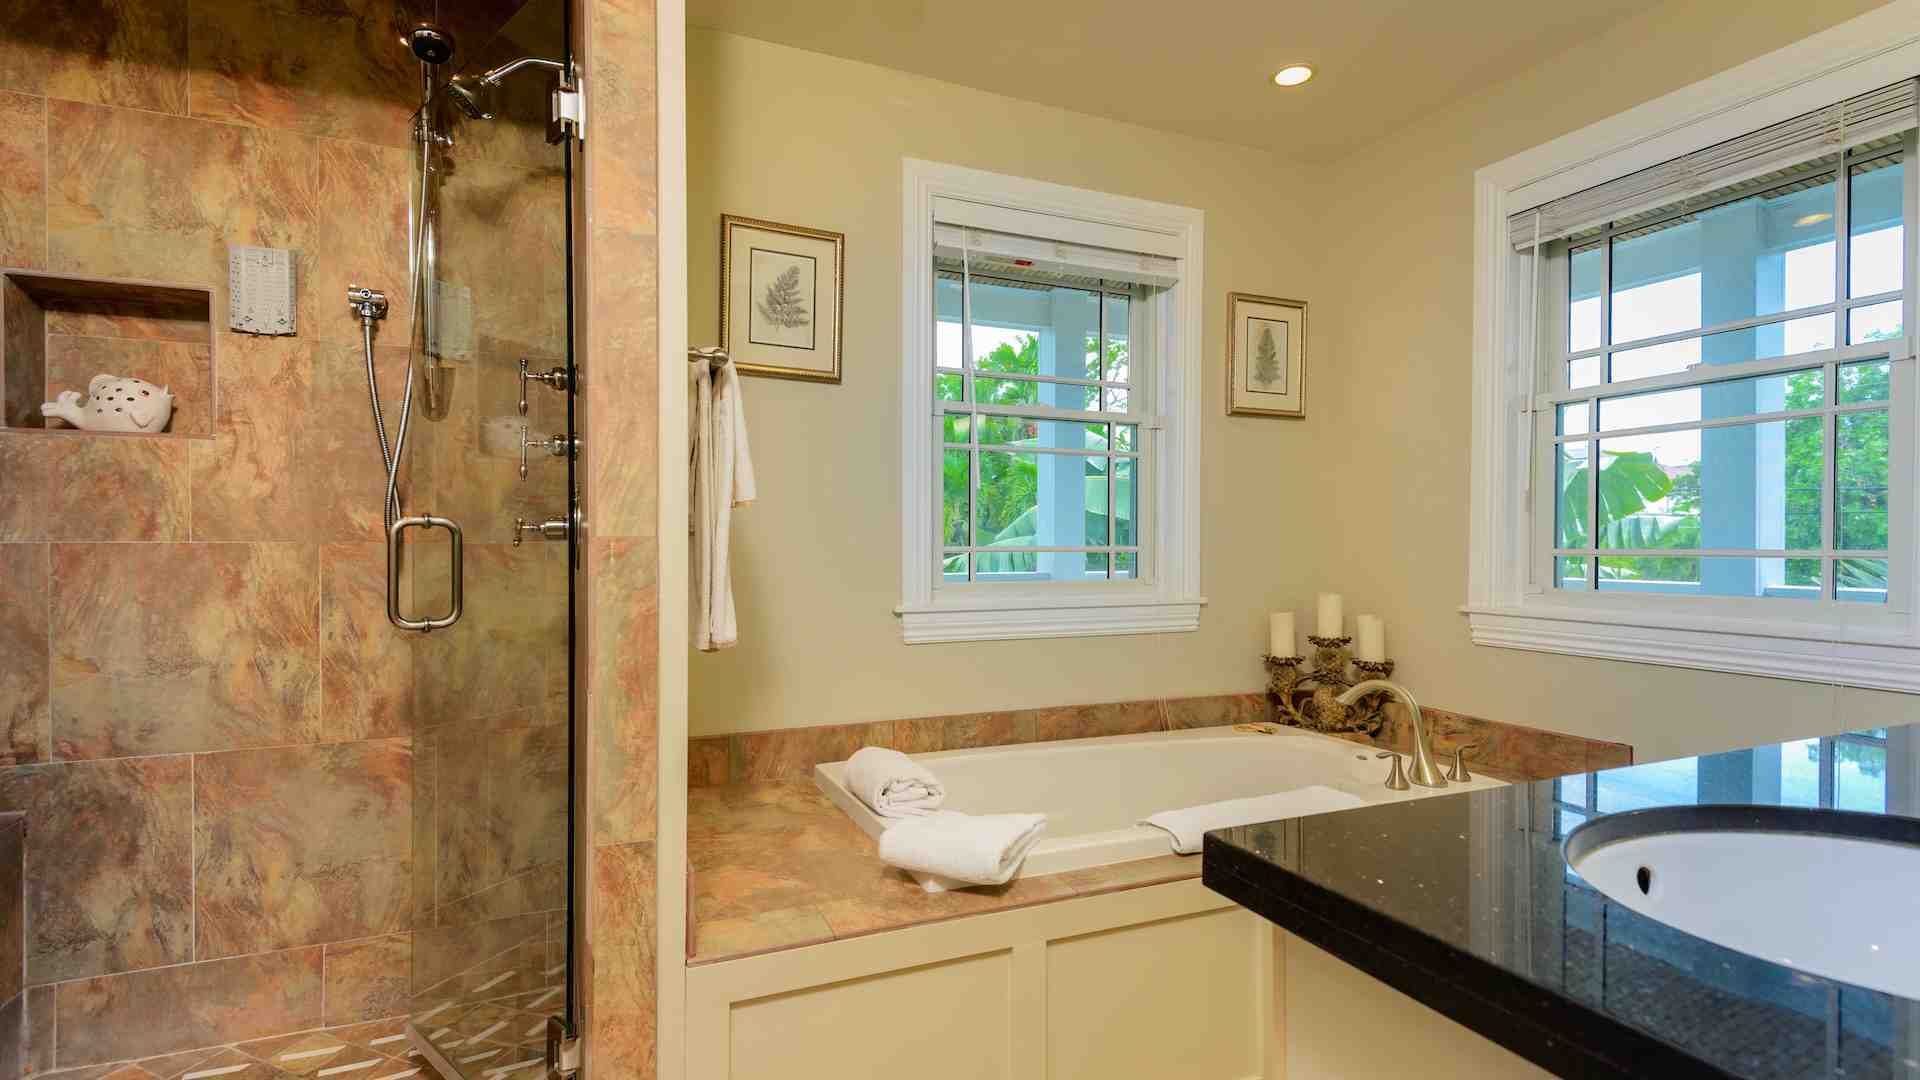 This full bathroom is directly attached to the first bedroom with glass shower...